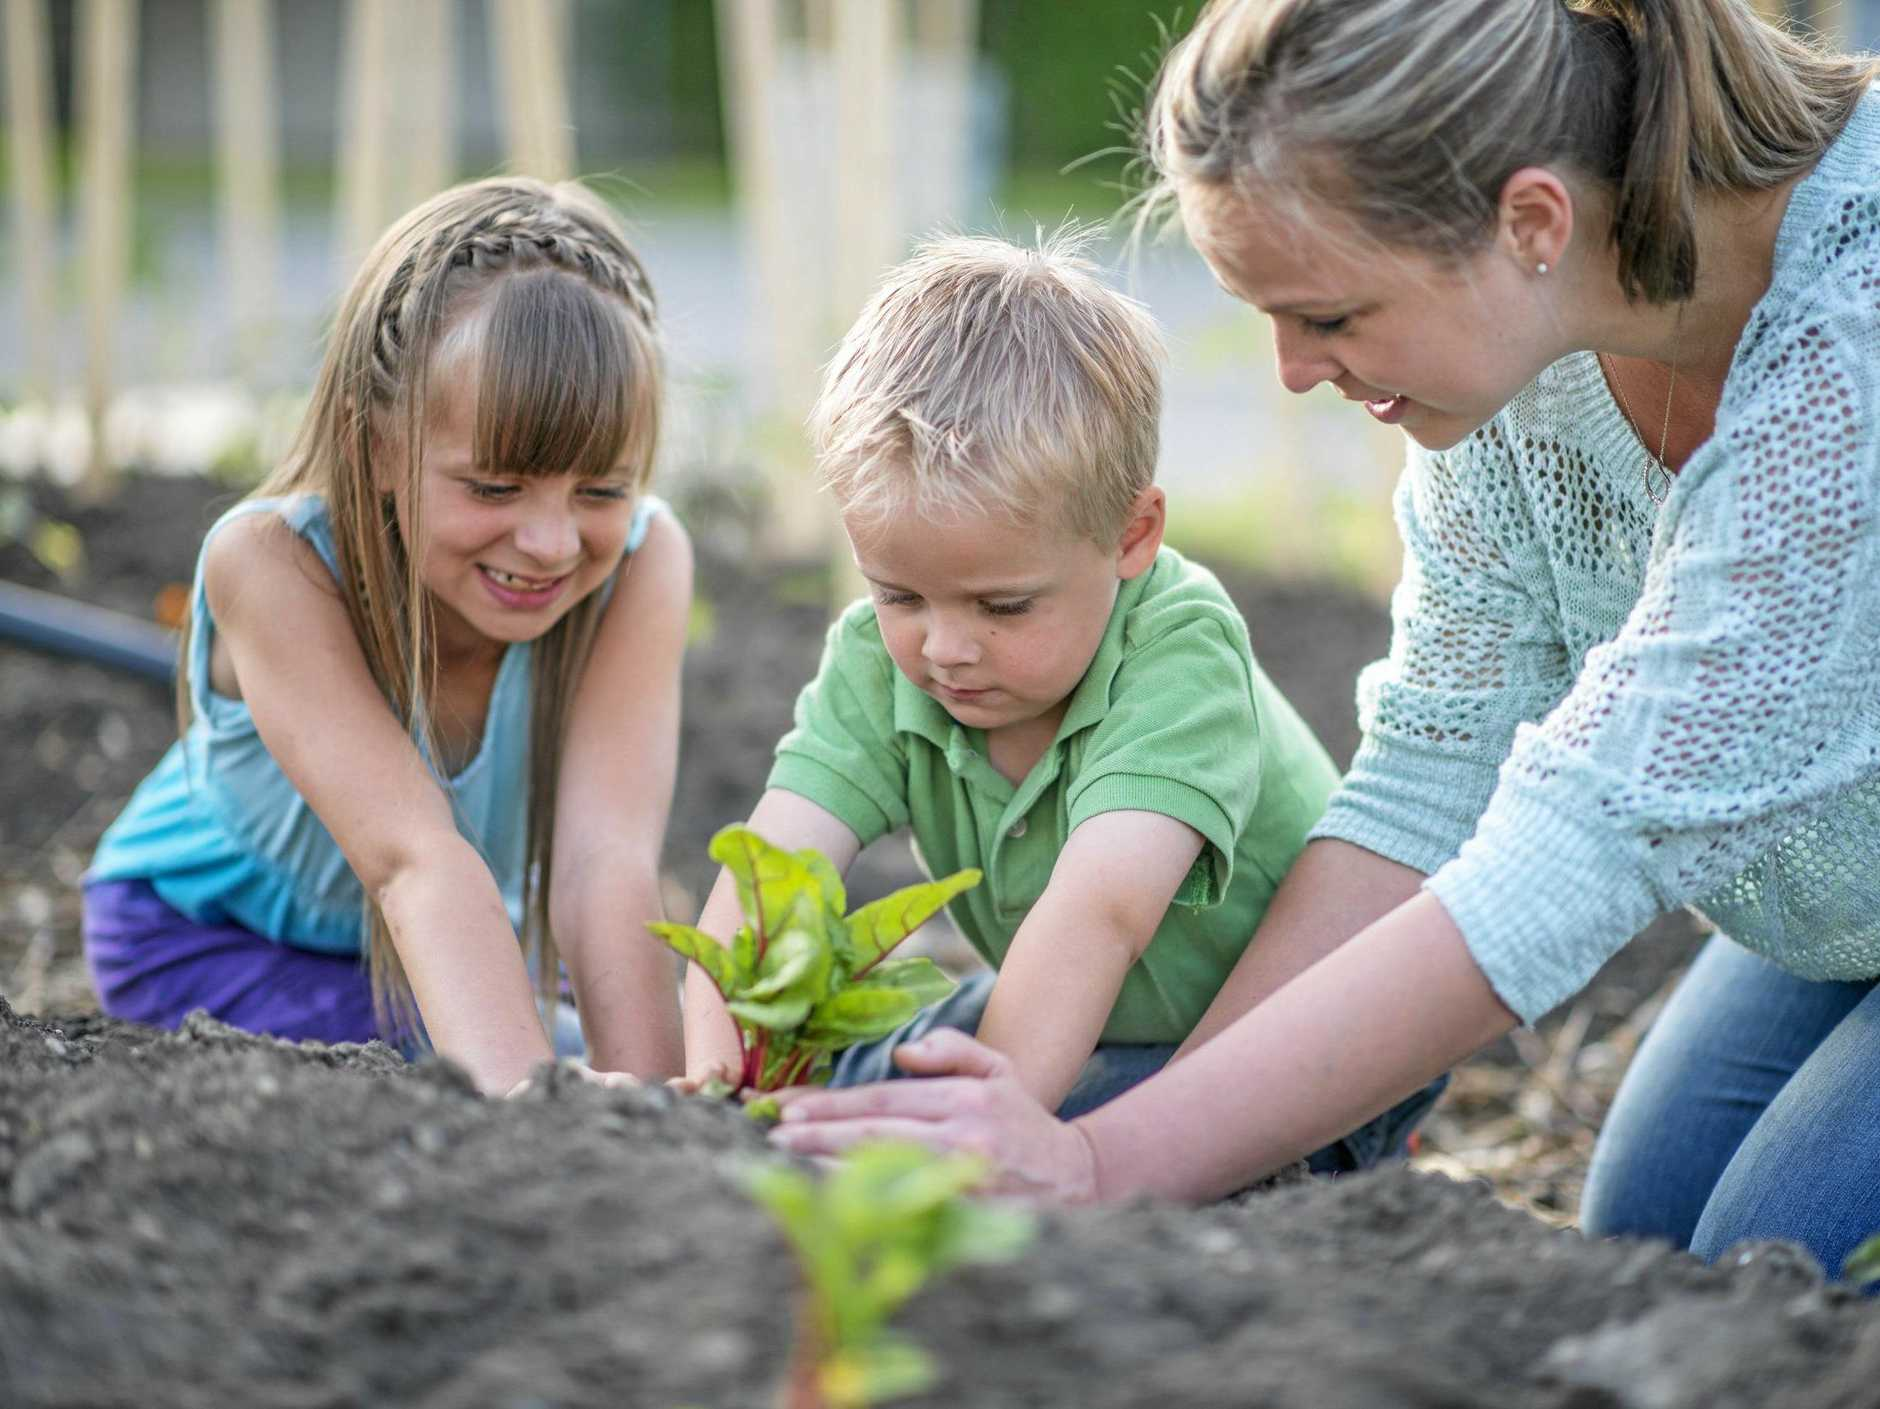 Most kids really enjoy nurturing plants and watching them grow.